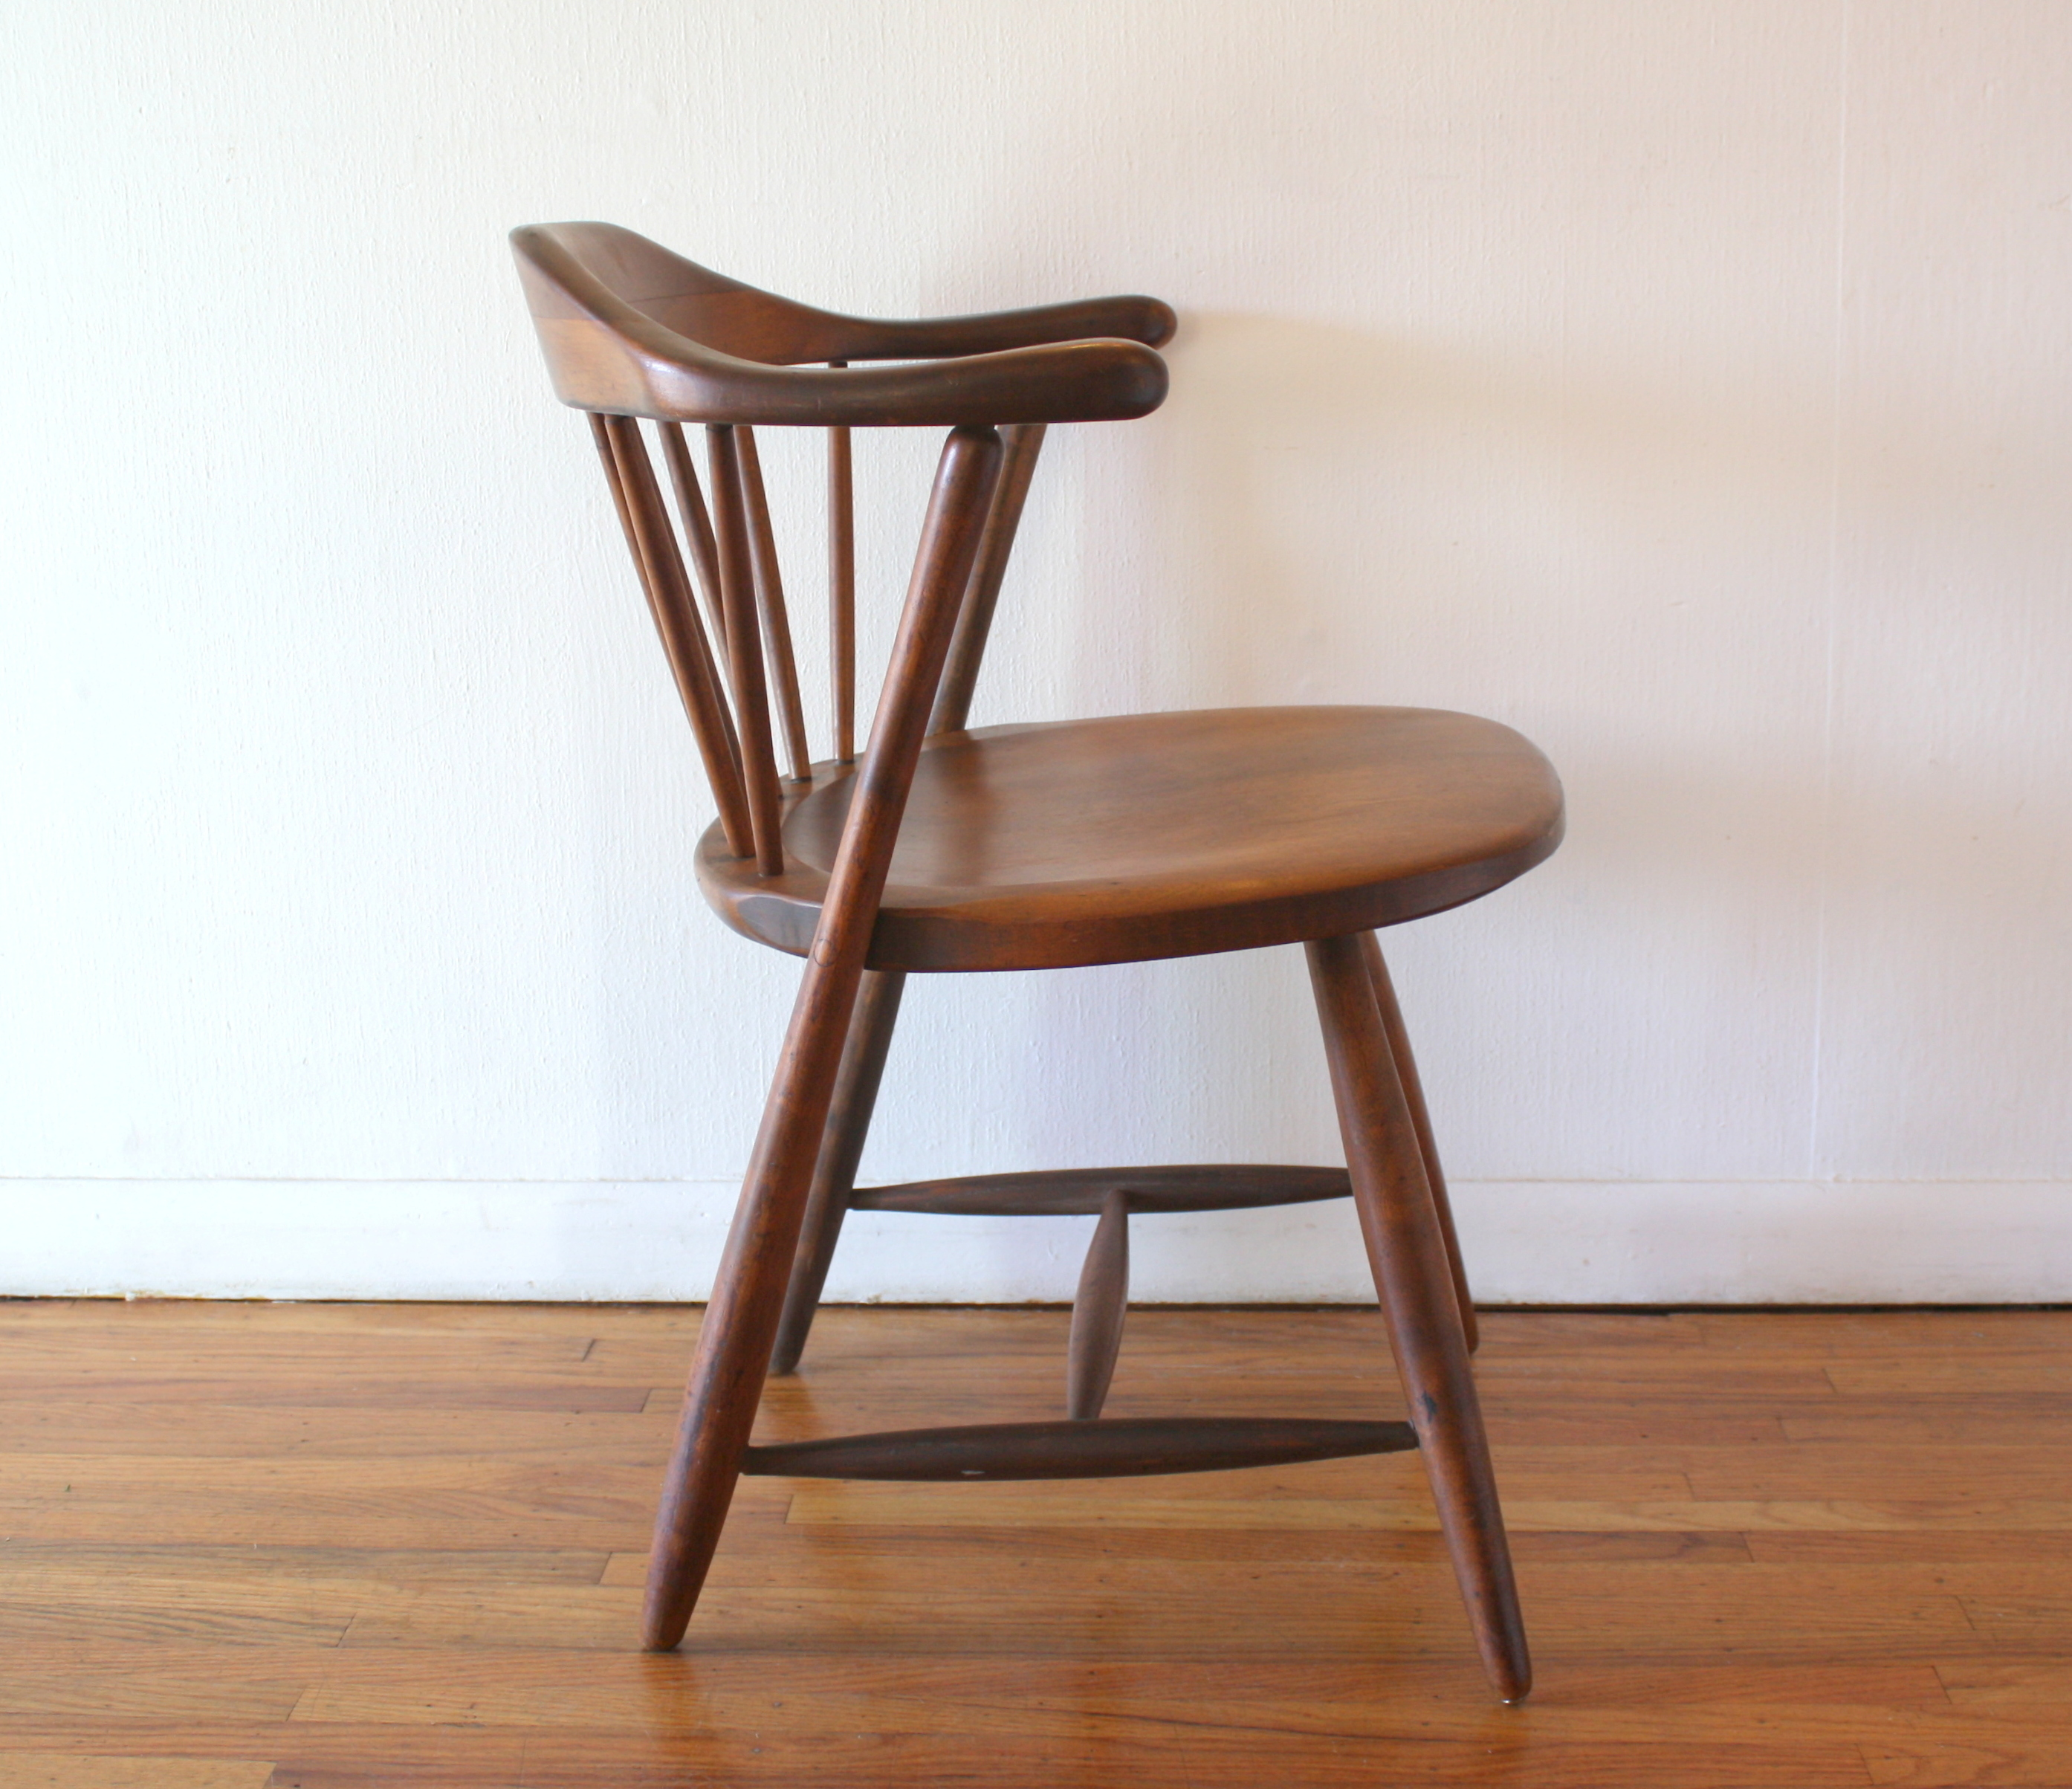 conant ball chair outdoor with side table mid century modern arm by picked vintage